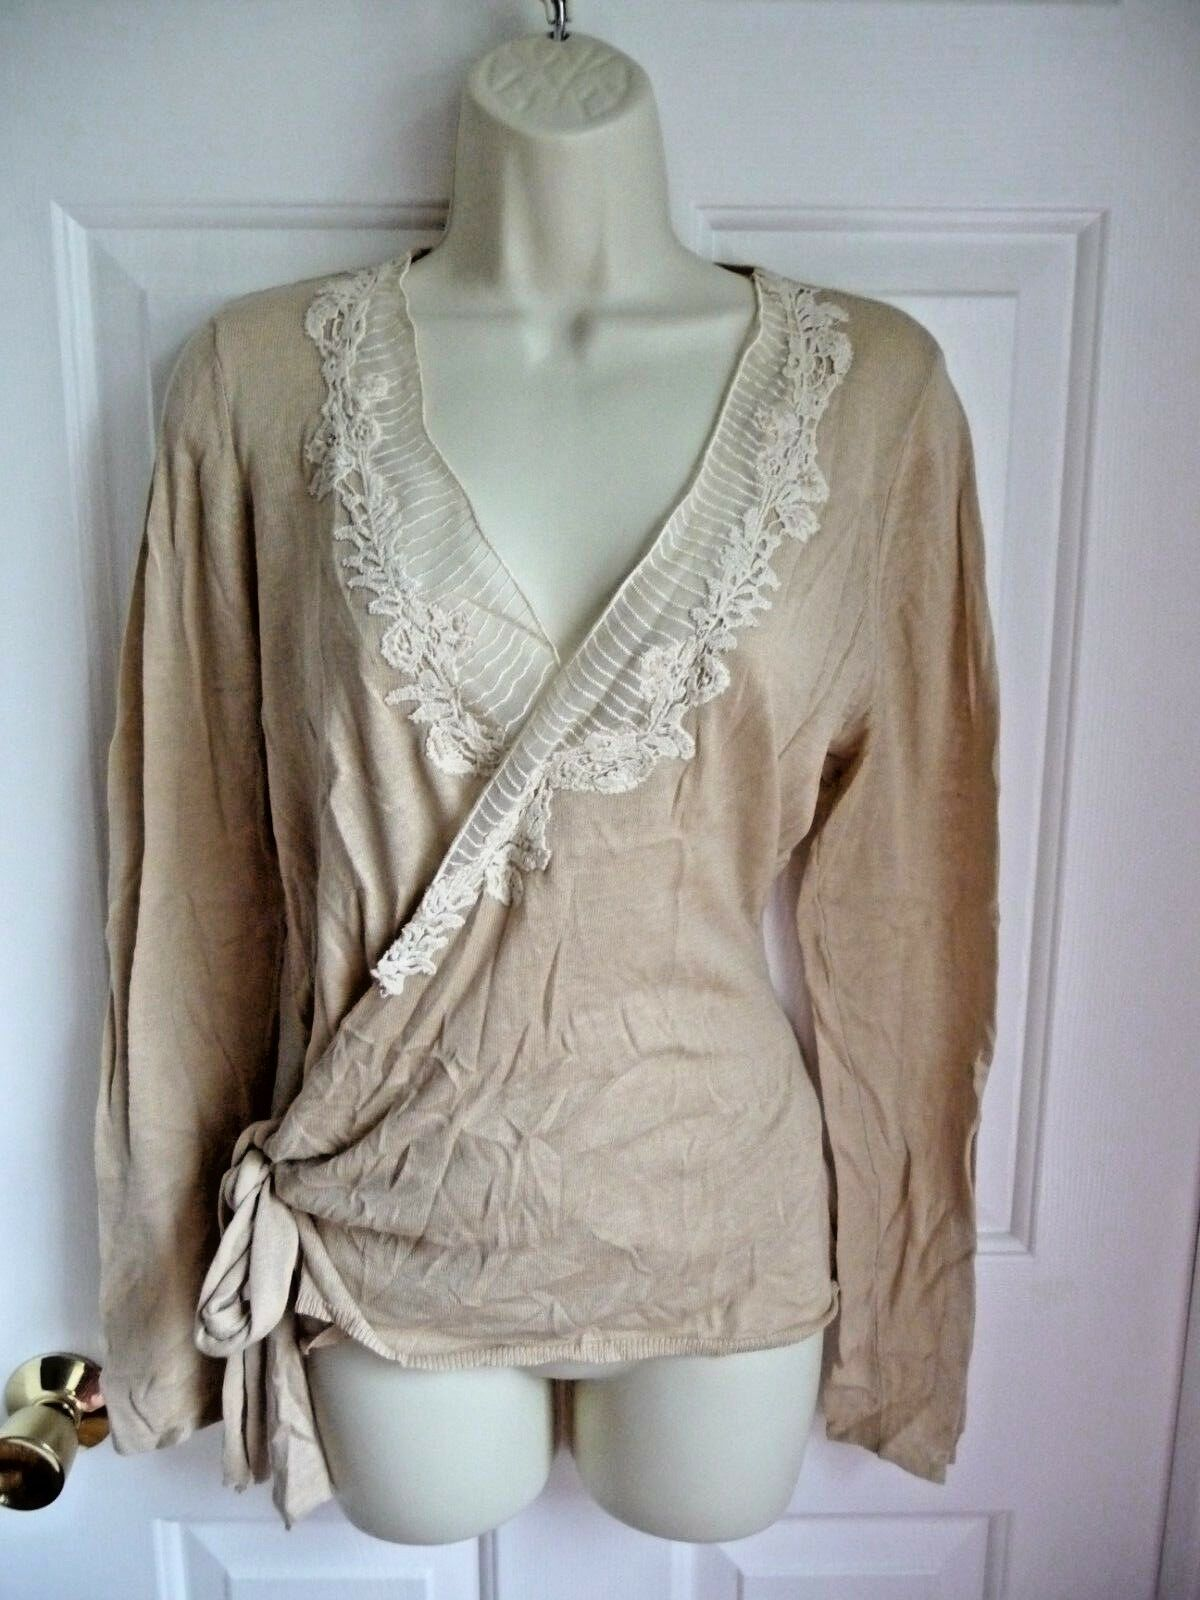 TAHARI T NWT L Juniper Wrap Sweater Silk Cotton Knit Beige Cream White Lace Trim